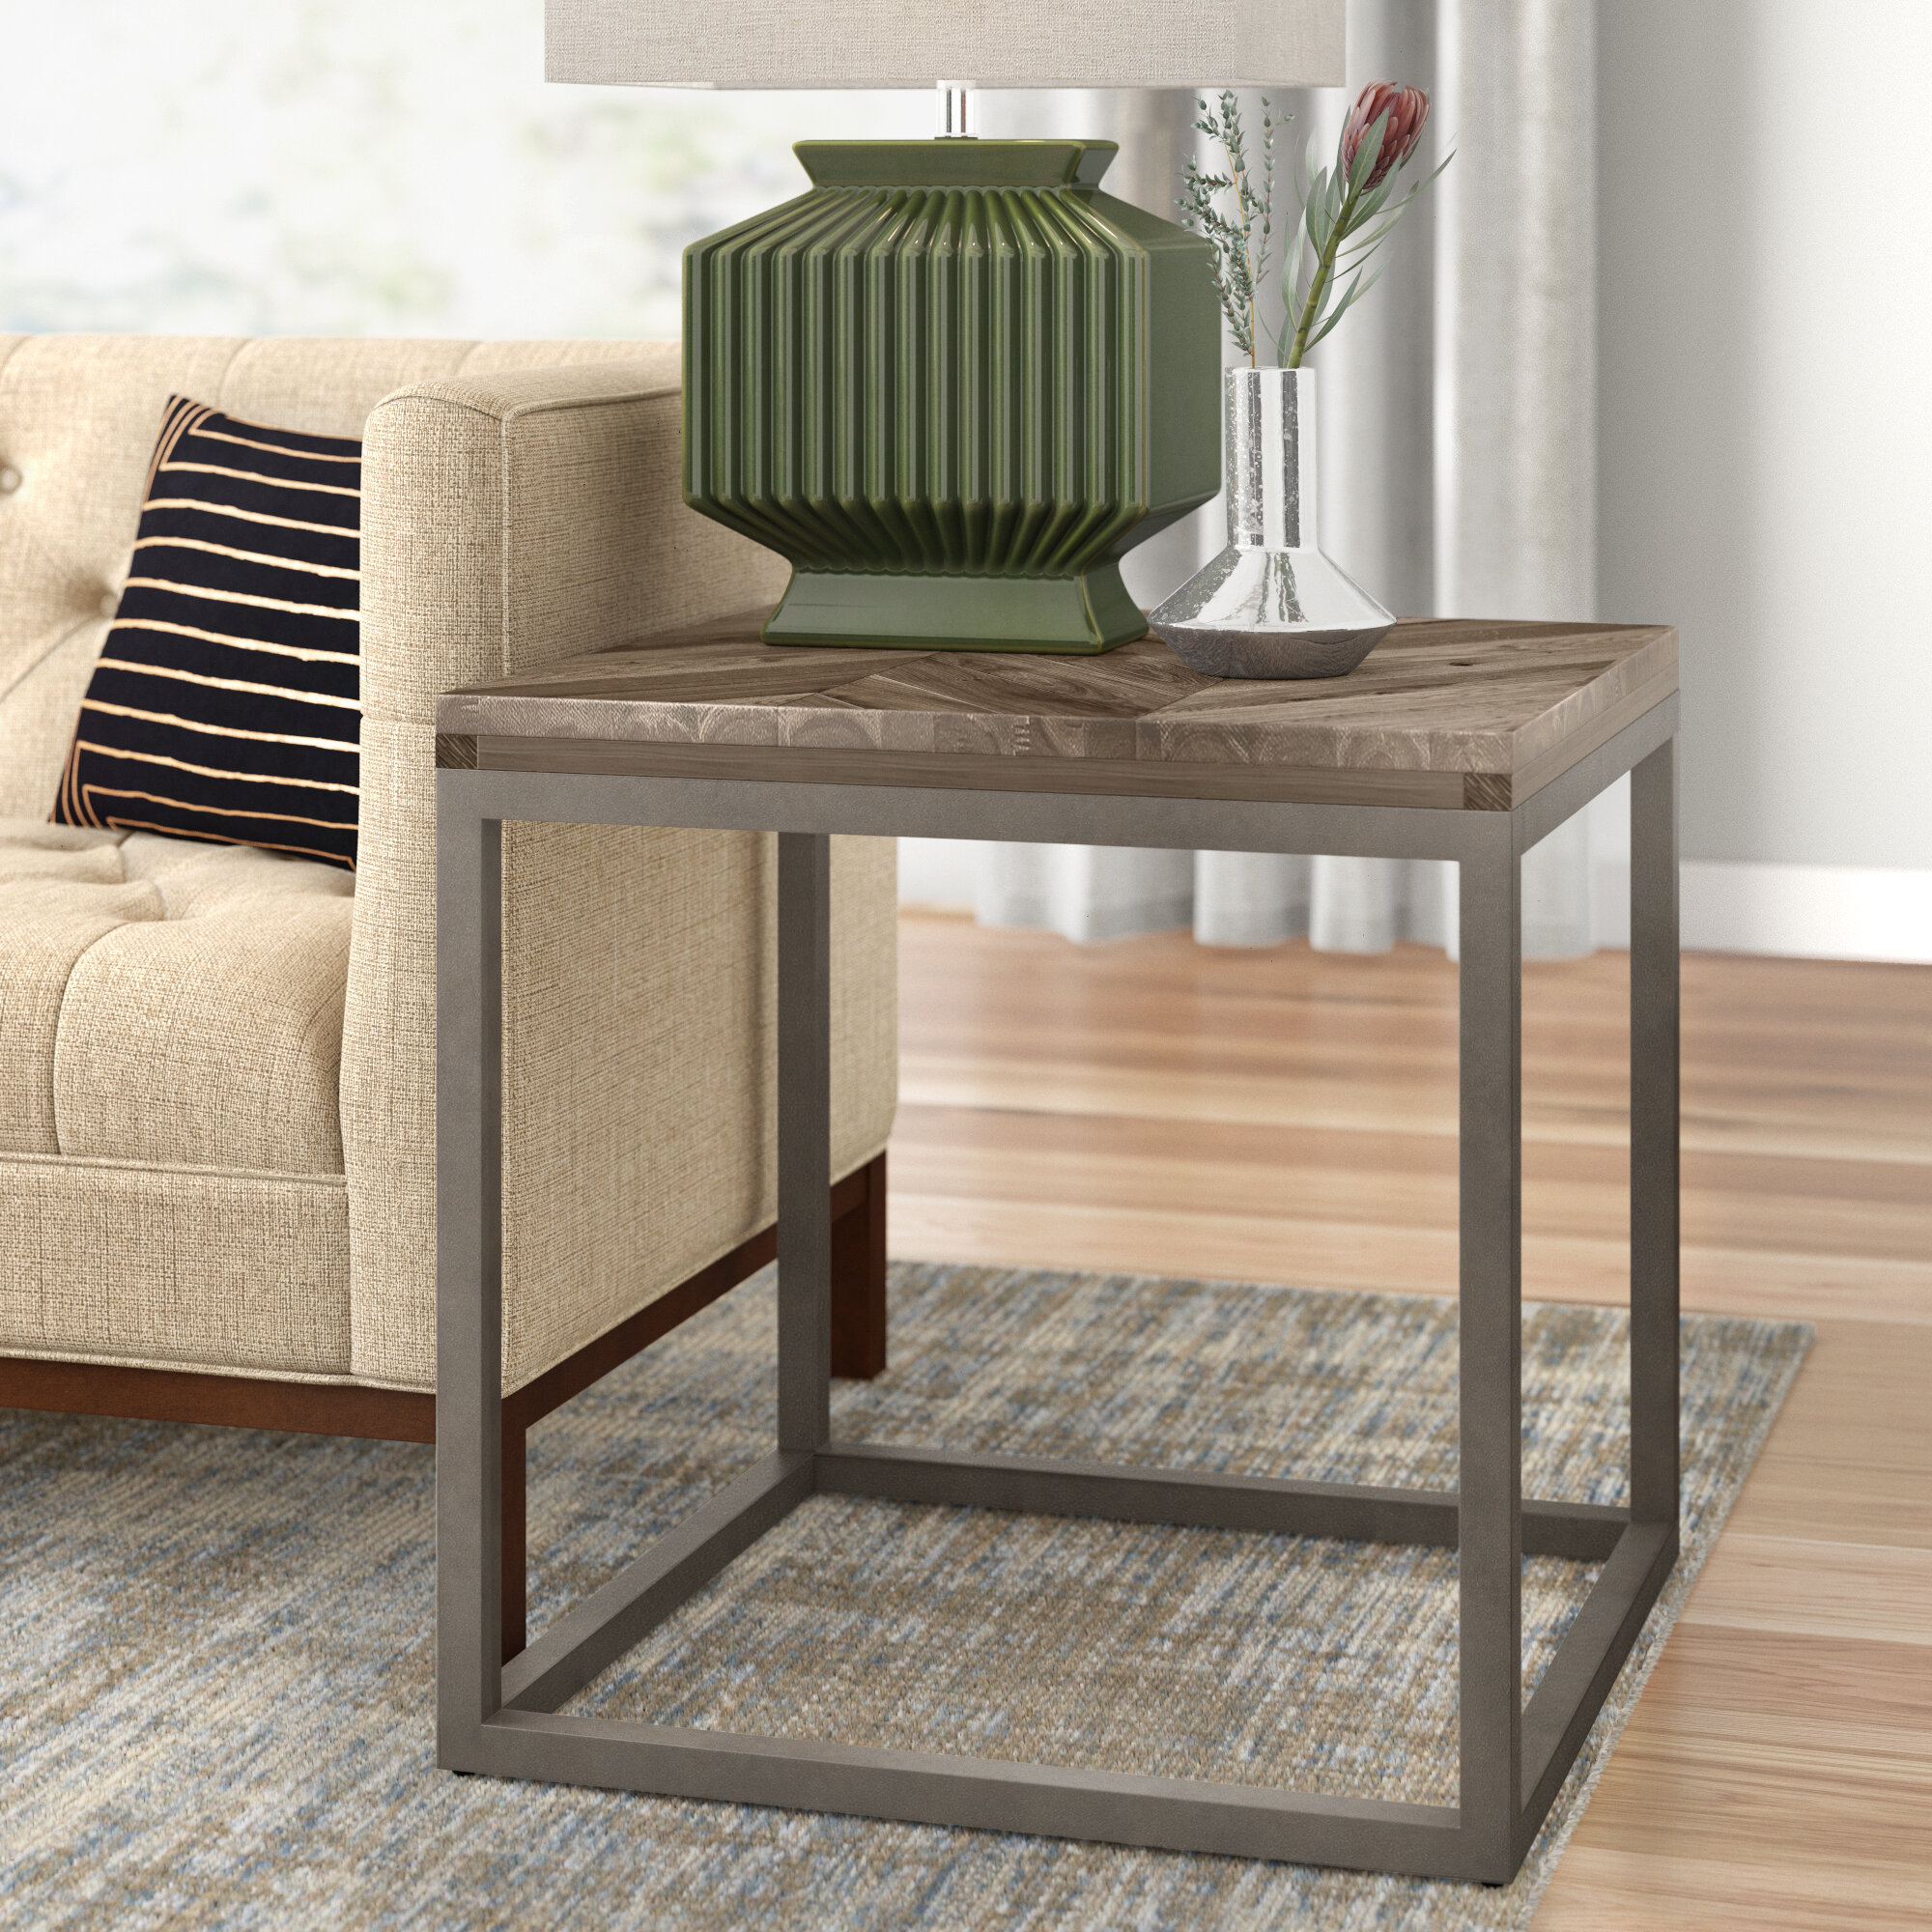 Alyssia Frame End Table Reviews Joss Main